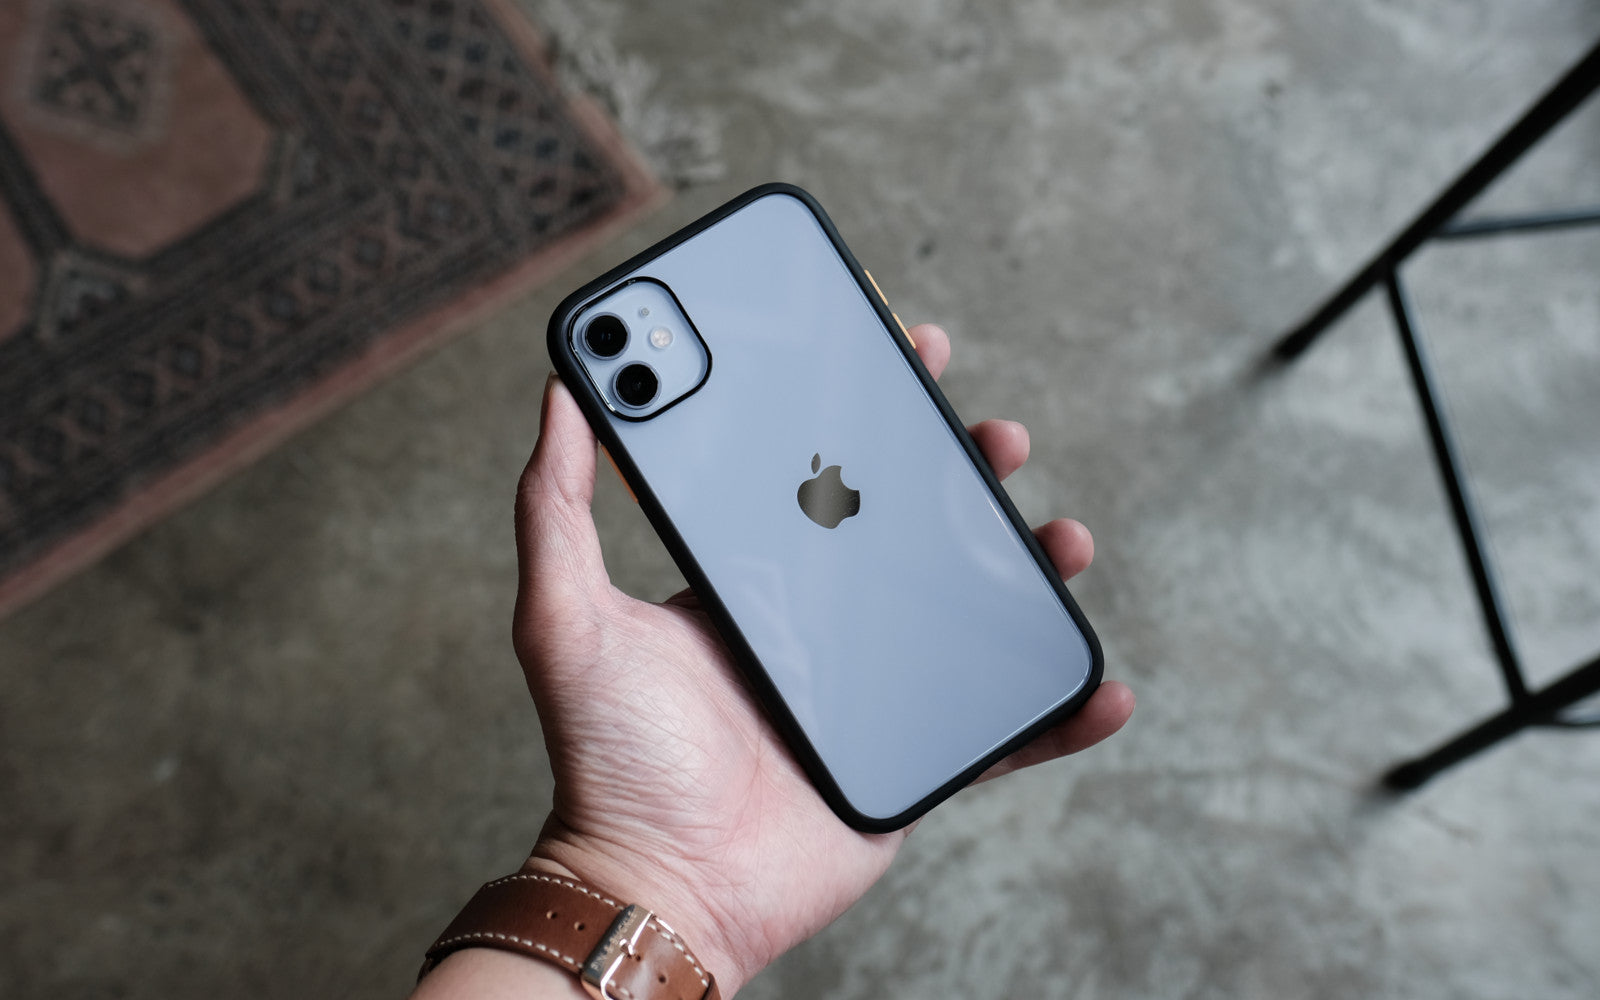 Bare Armour - Minimalist Shock Resistant Case for iPhone 11 - Branding-free